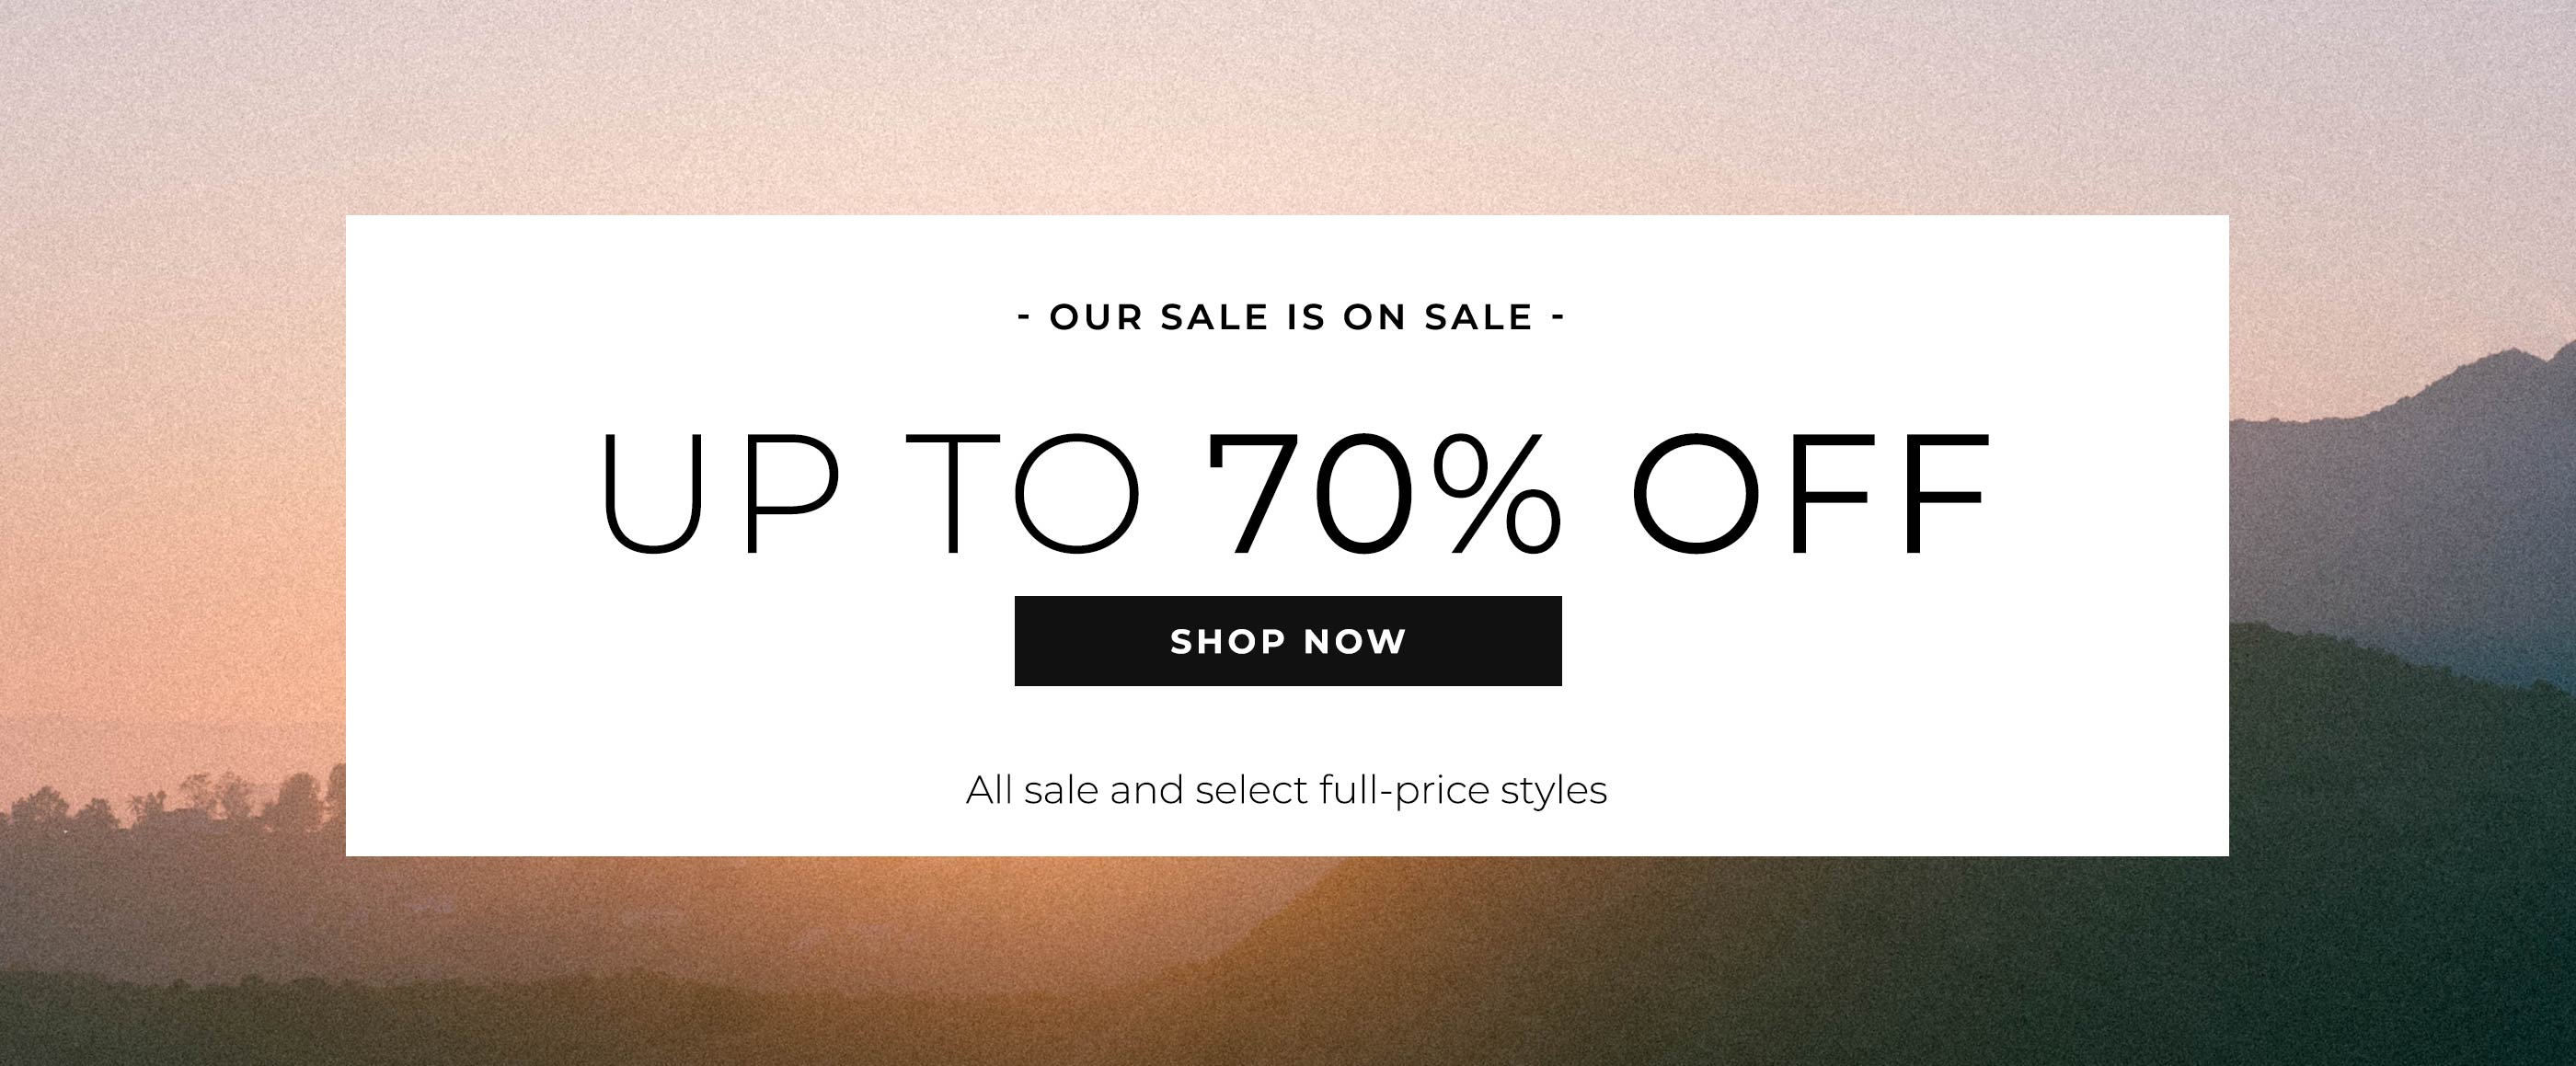 Our Sale Is On Sale Up To 70% Off